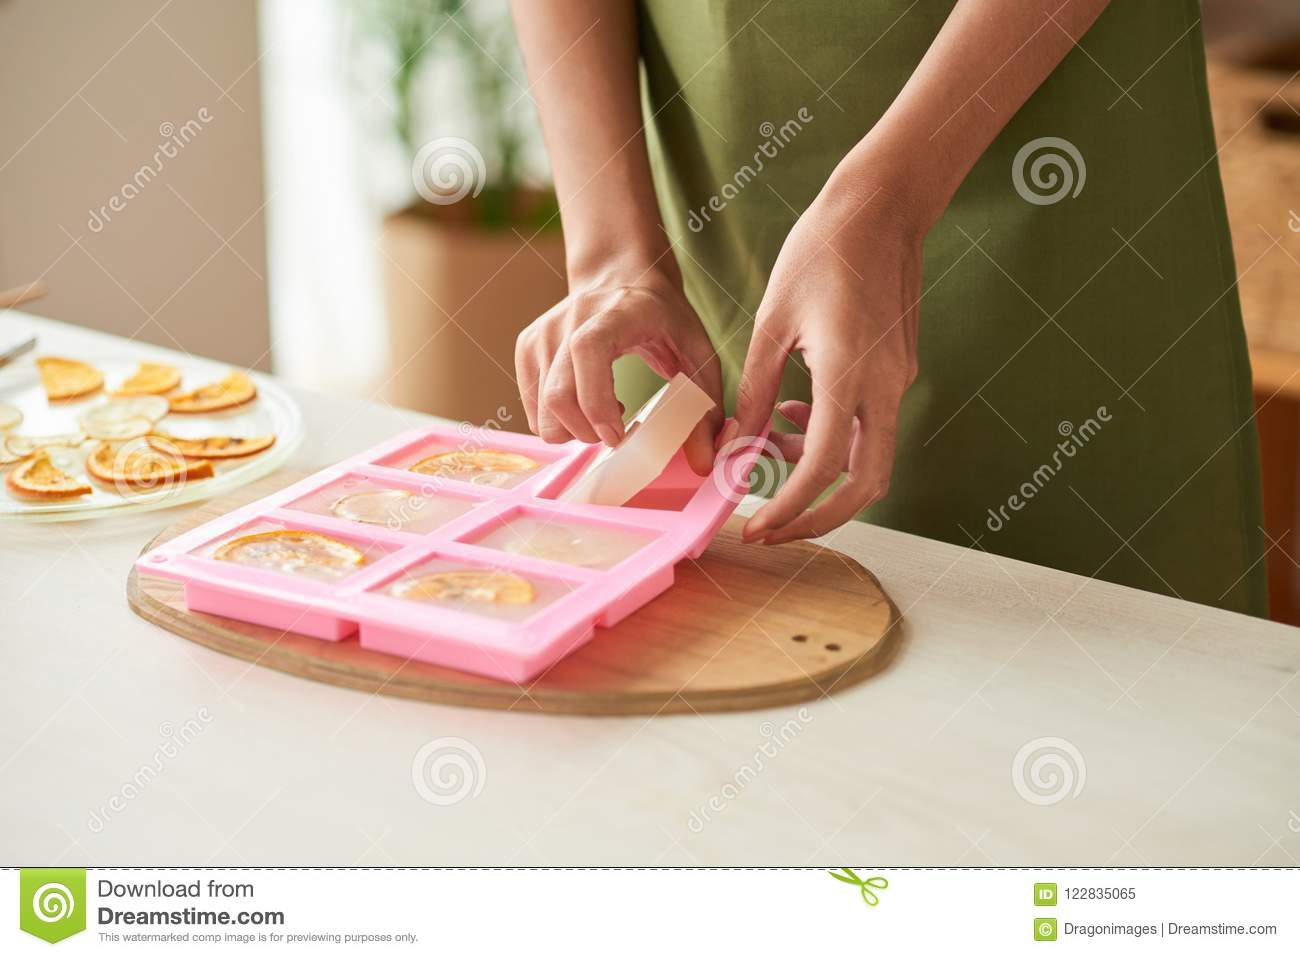 Close-up image of woman taking homemade soap out of silicone mold